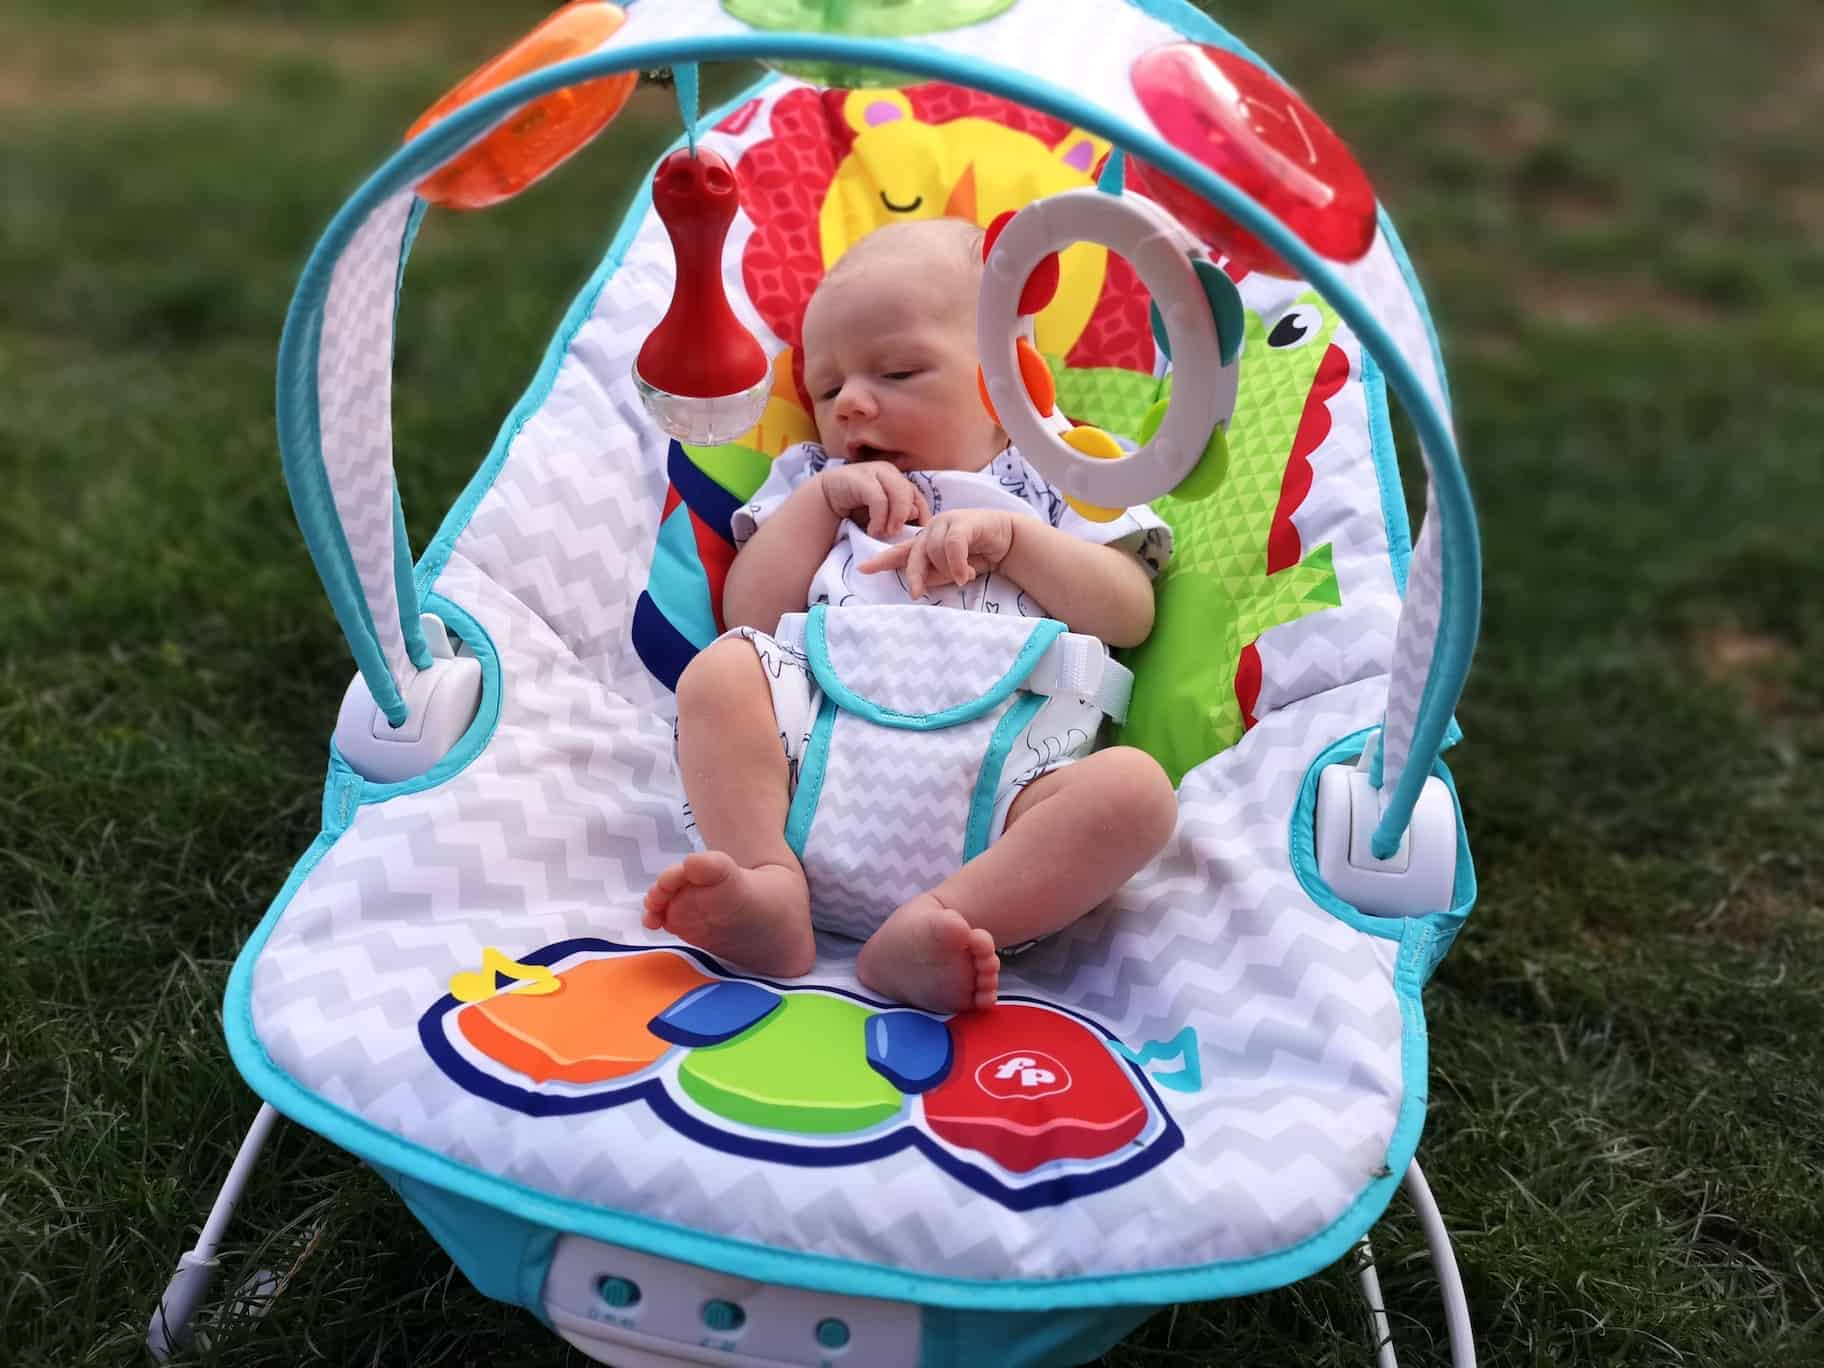 Fisher-Price Kick and Play Musical Bouncer Music New-born Baby Bouncer and Chair with Removable Toy Bar and Calming Vibrations Lights and Sound